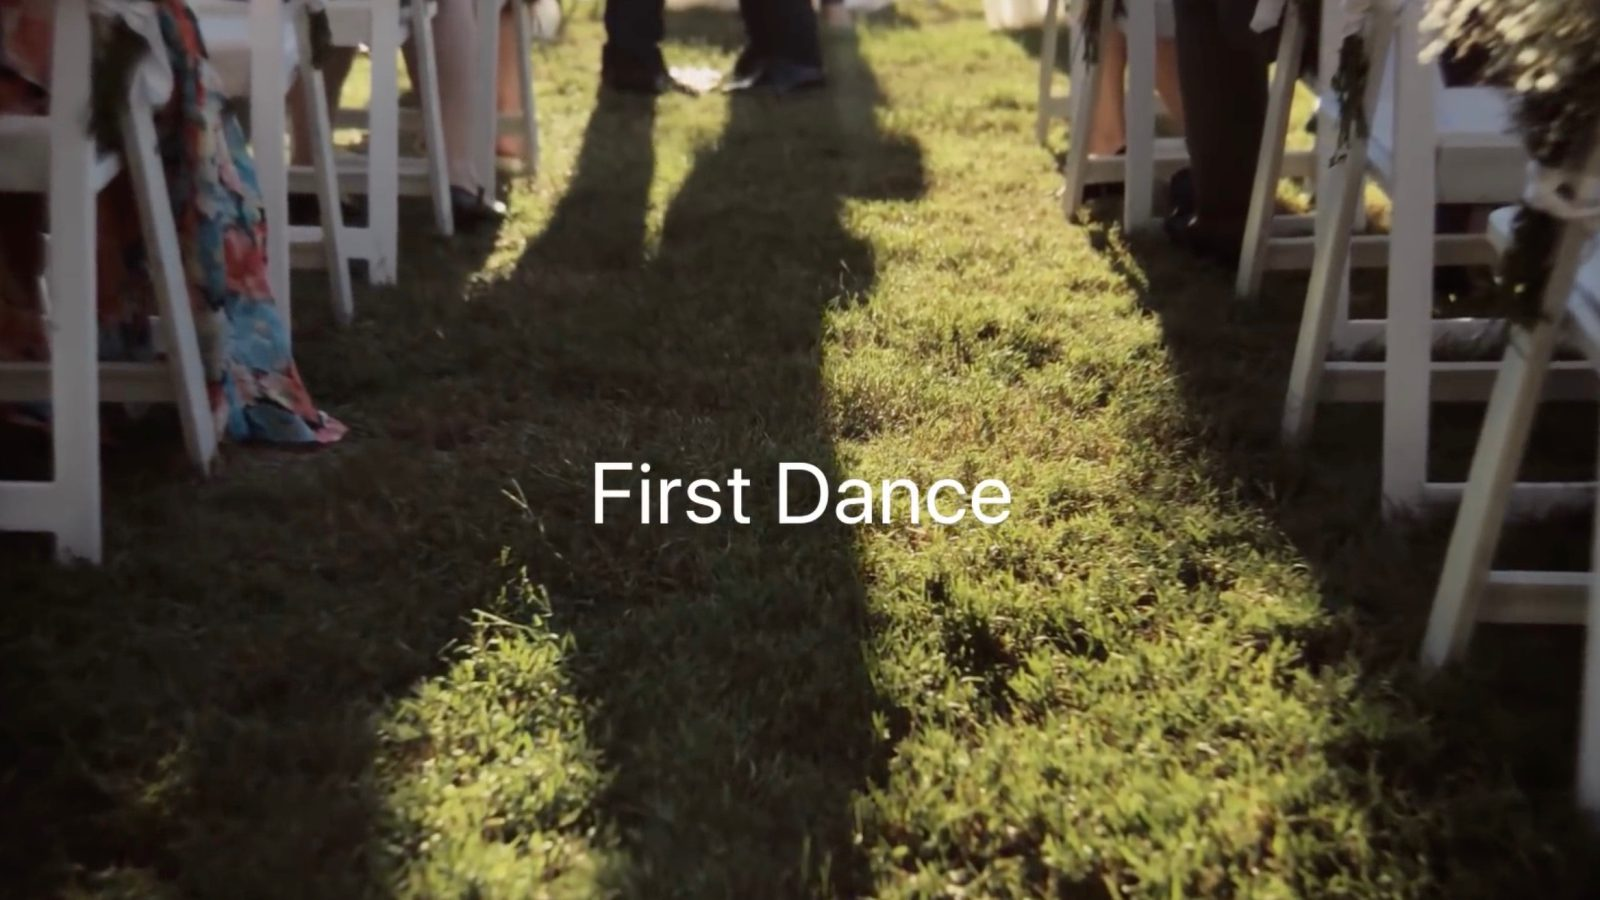 Photo of Apple supports same-sex marriage with new 'First Dance' campaign